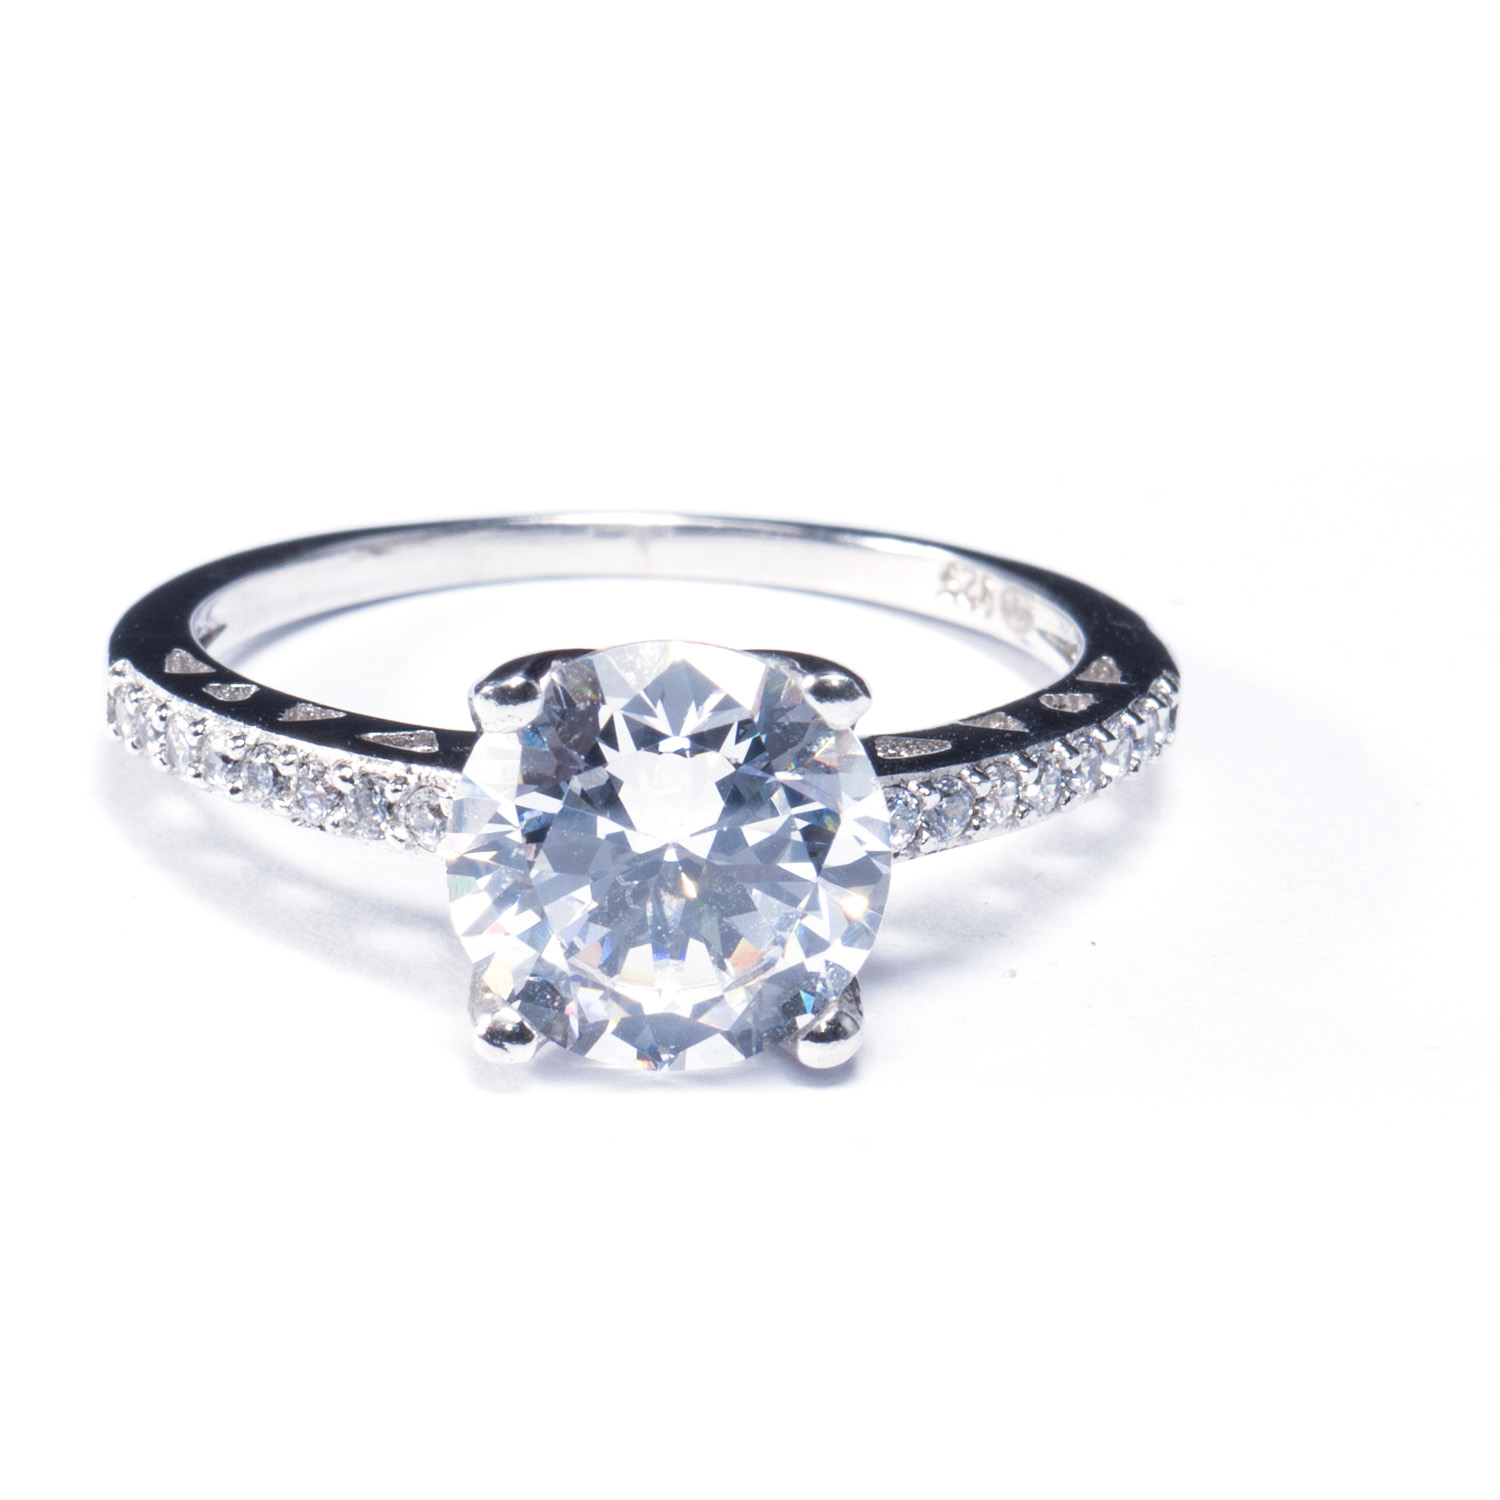 Diamond band engagement rings